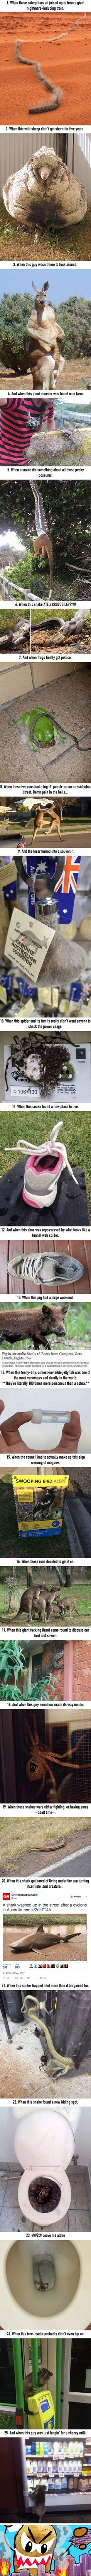 25 Times Australian Animals Just Took Things Way Too Far